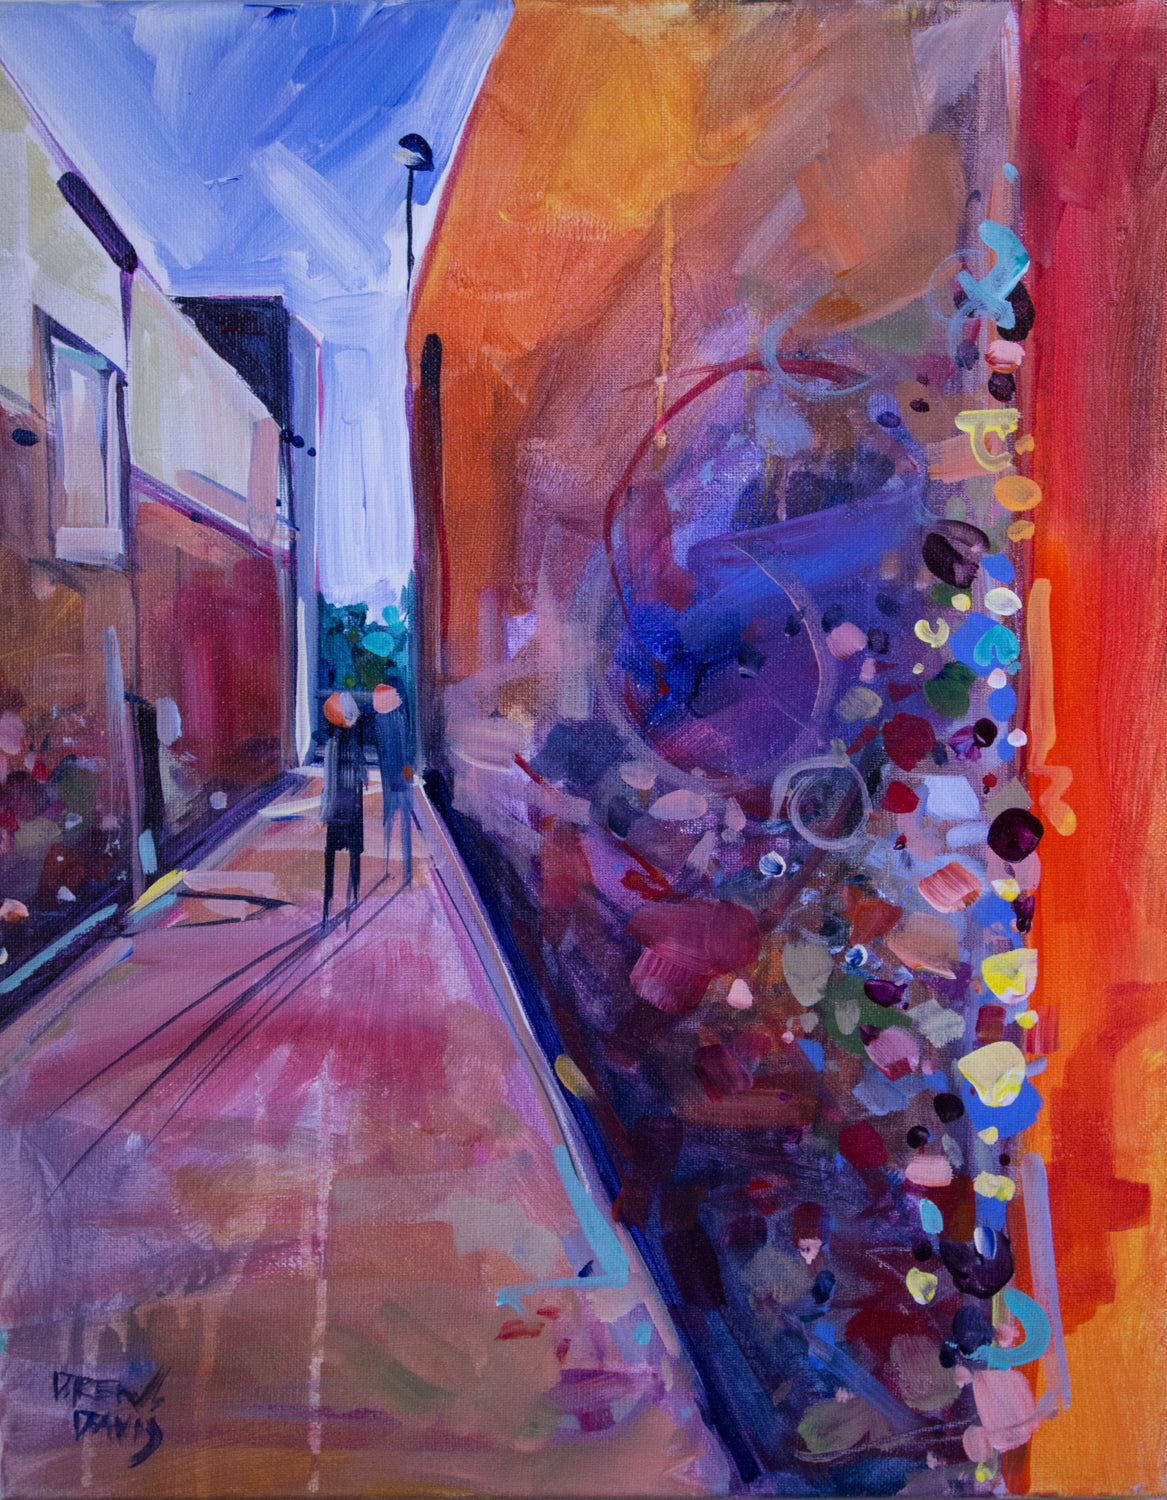 BUBBLEGUM ALLEY - SLO 3 | 16x20 | Original Acrylic Study on Canvas